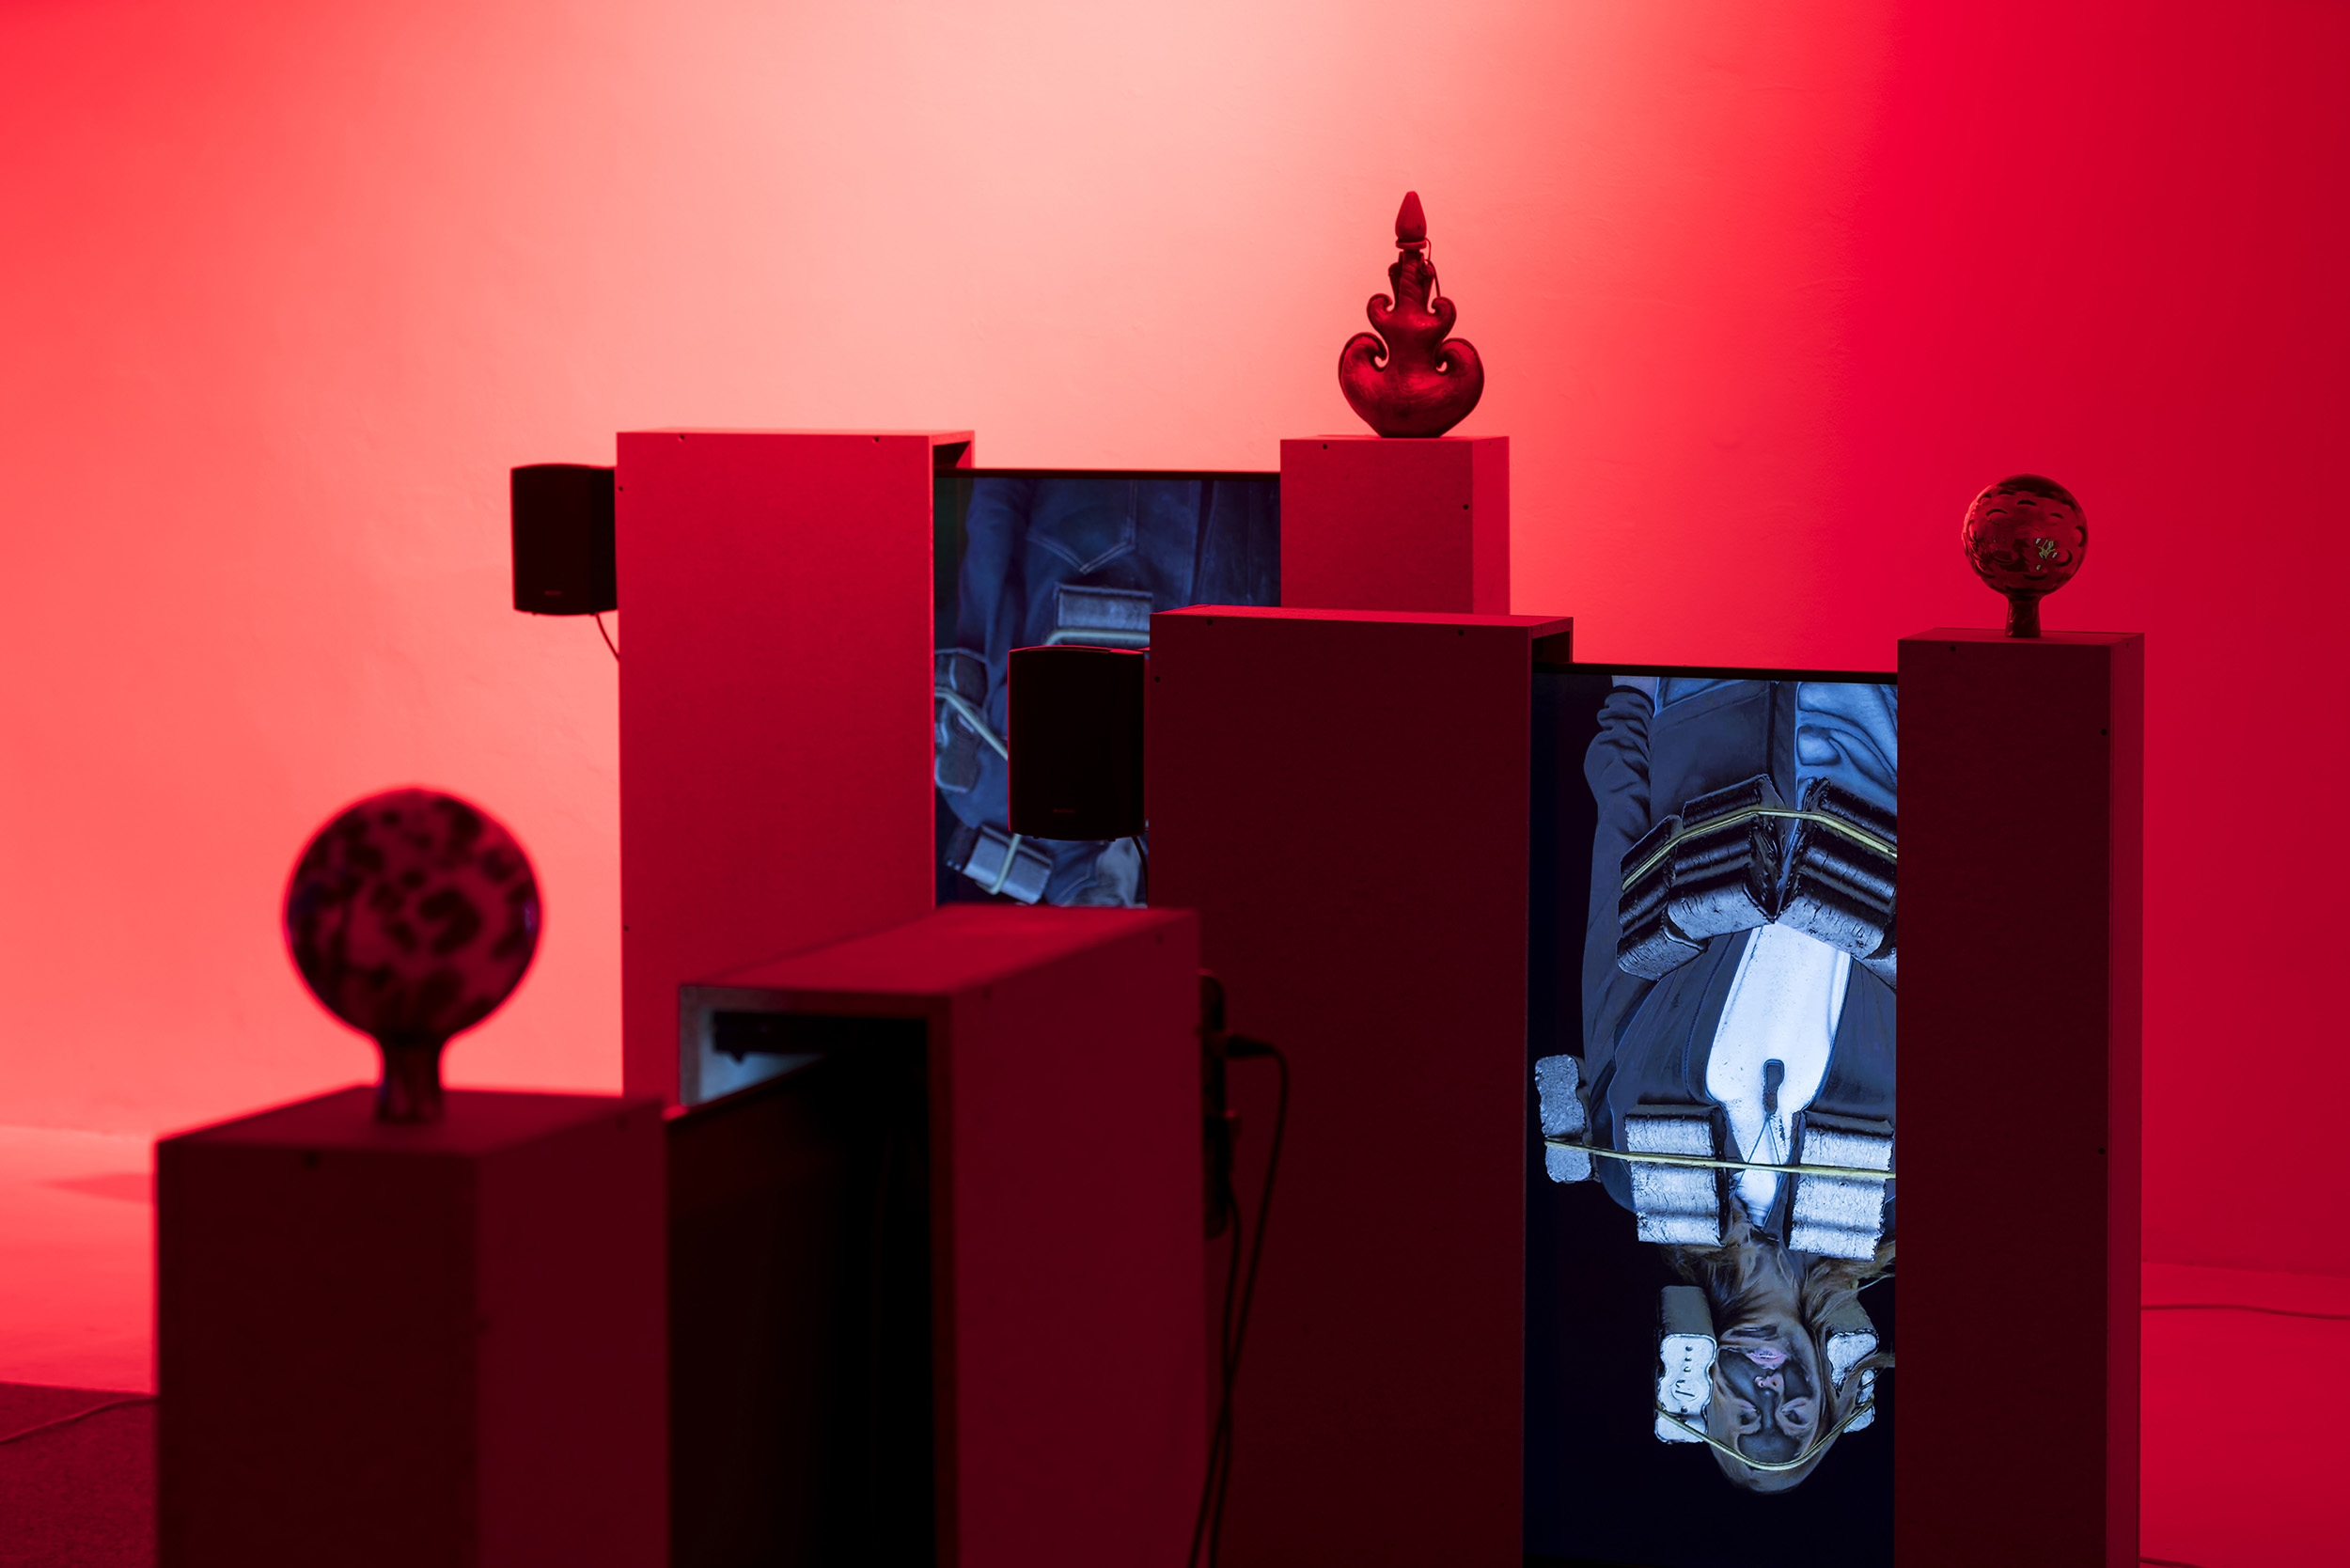 'Spiritualities: Three Contemporary Portrayals of Transcendence and Beliefs' at Meetfactory